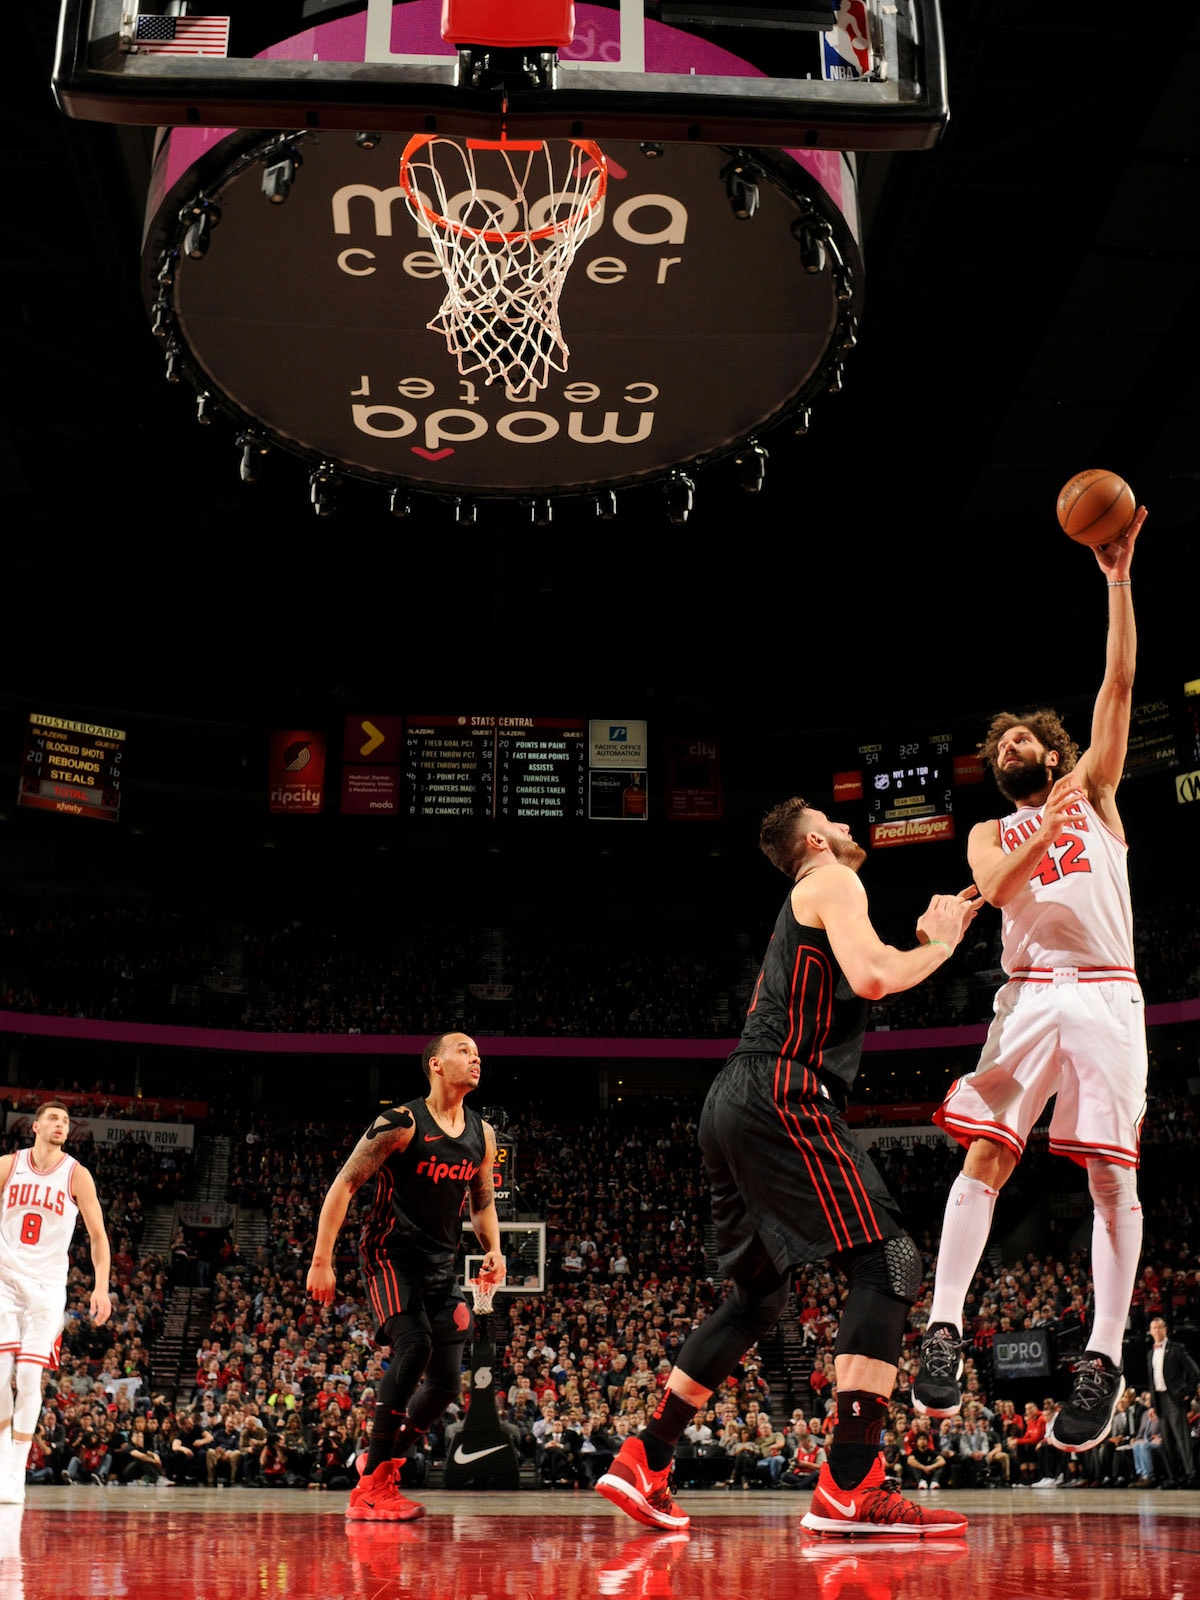 Robin Lopez #42 of the Chicago Bulls shoots the ball against the Portland Trail Blazers on January 31, 2018 at the Moda Center in Portland, Oregon.